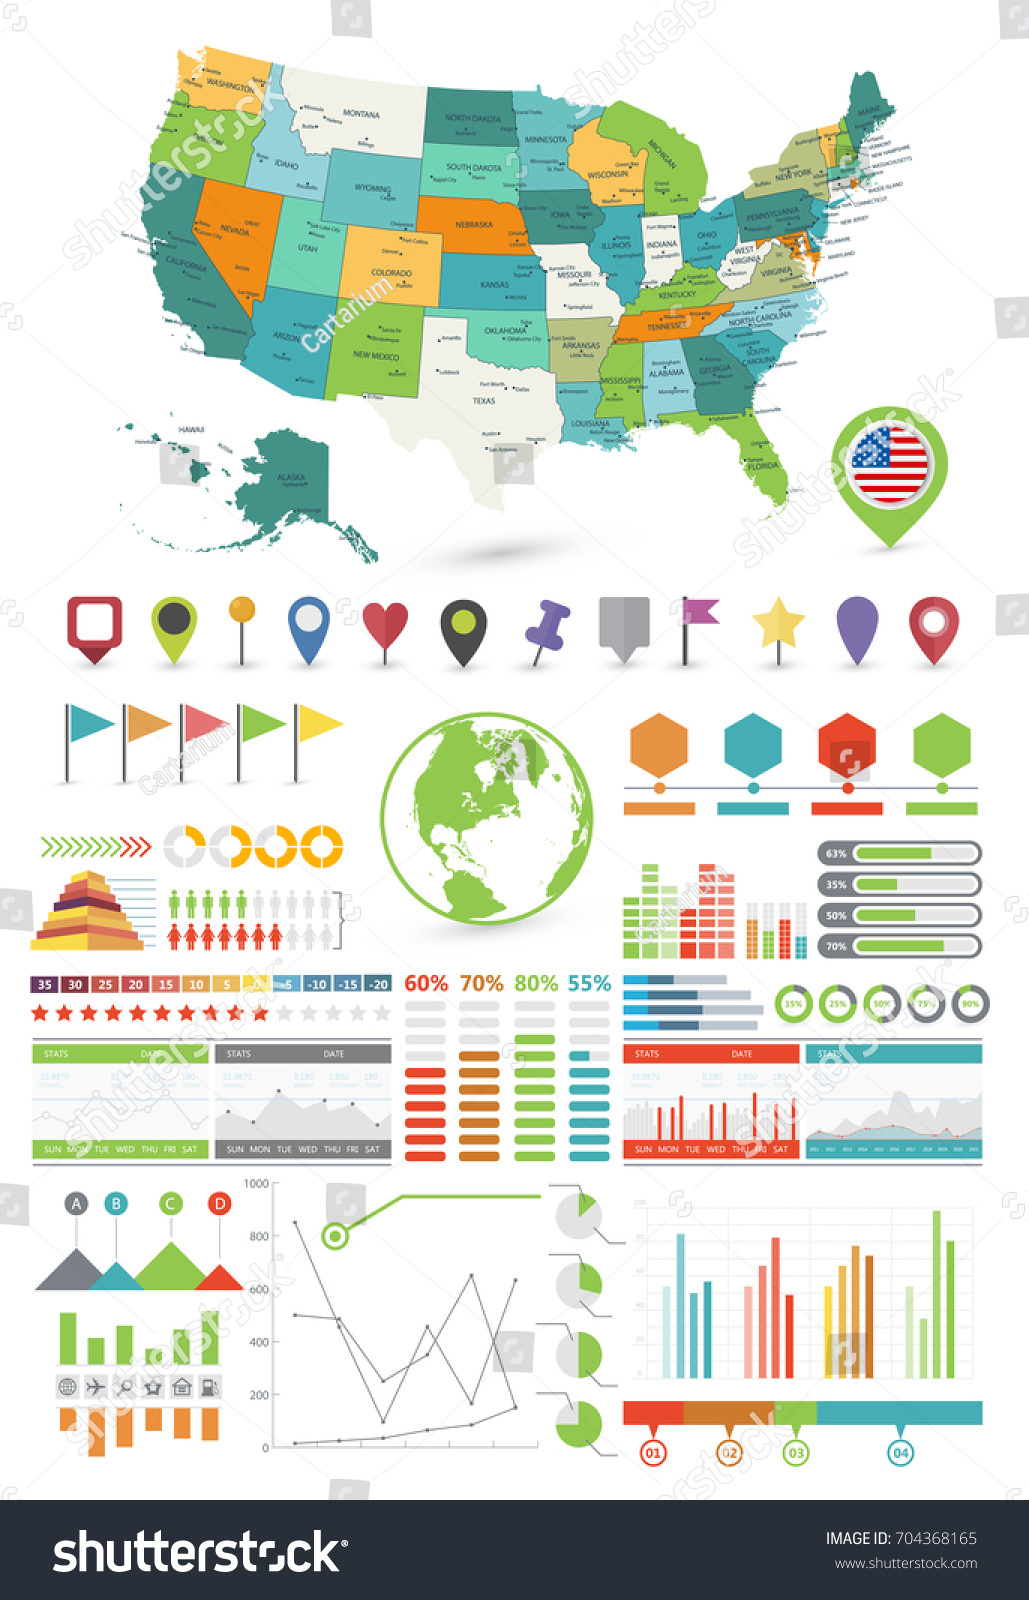 Powerpoint Us Map Template Elioleracom - Editable us map powerpoint free